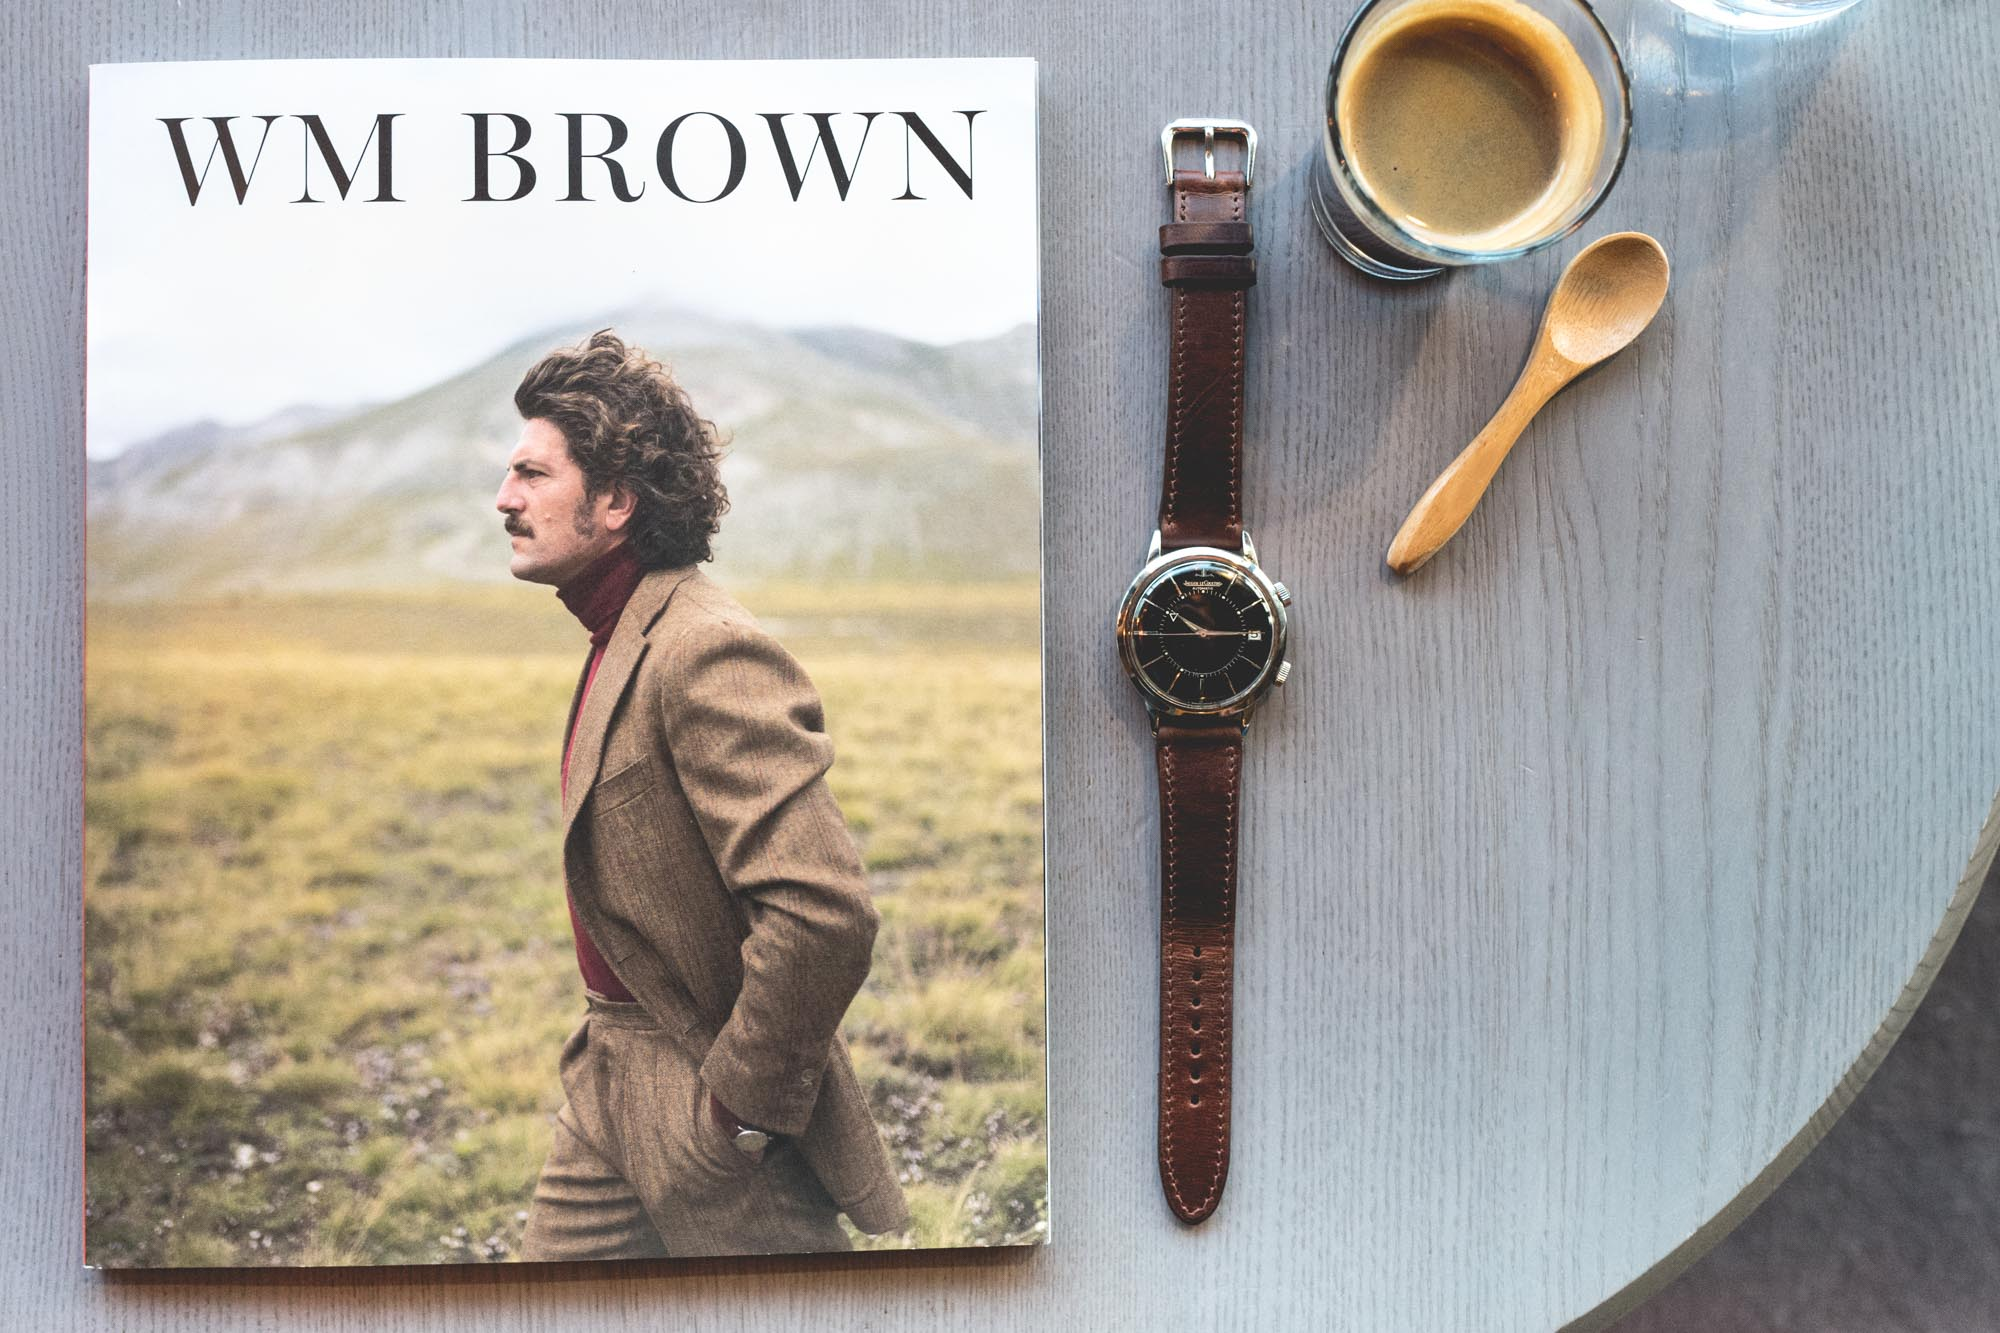 WM BROWN Magazine - Fall 2018